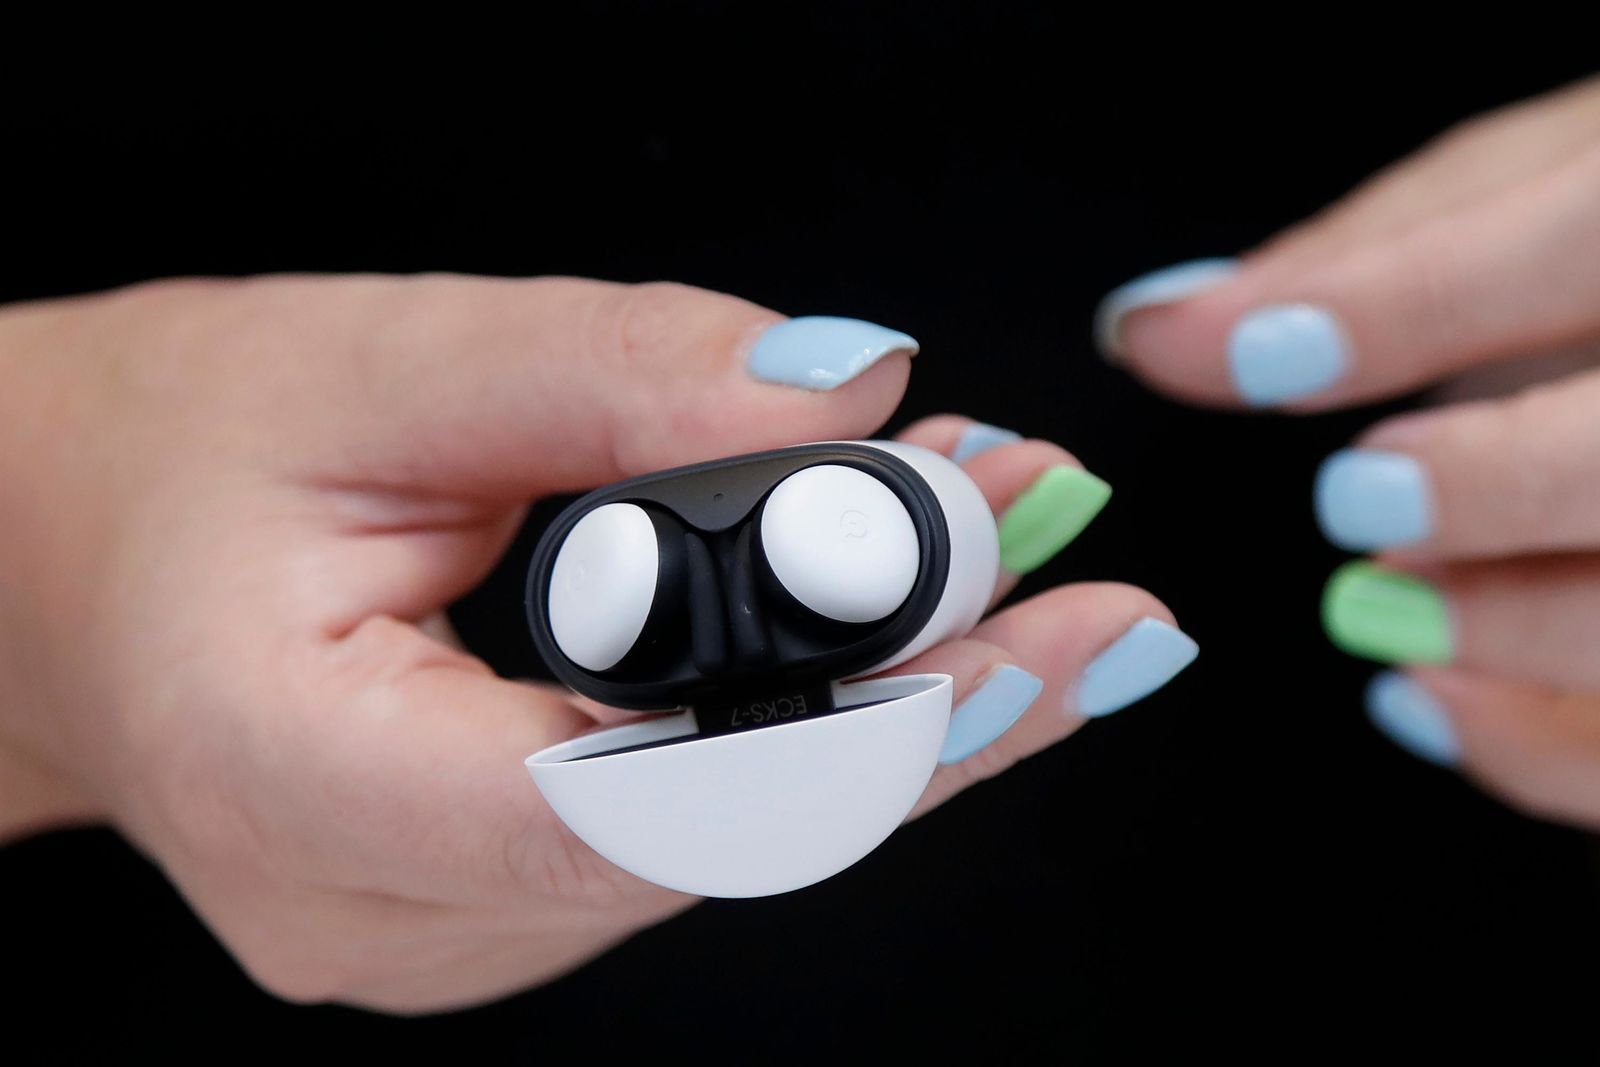 In this Tuesday, Sept. 24, 2019, photo Isabelle Olsson, head of color & design for Nest, shows the Pixel buds in a case at Google in Mountain View, Calif. (AP Photo/Jeff Chiu)